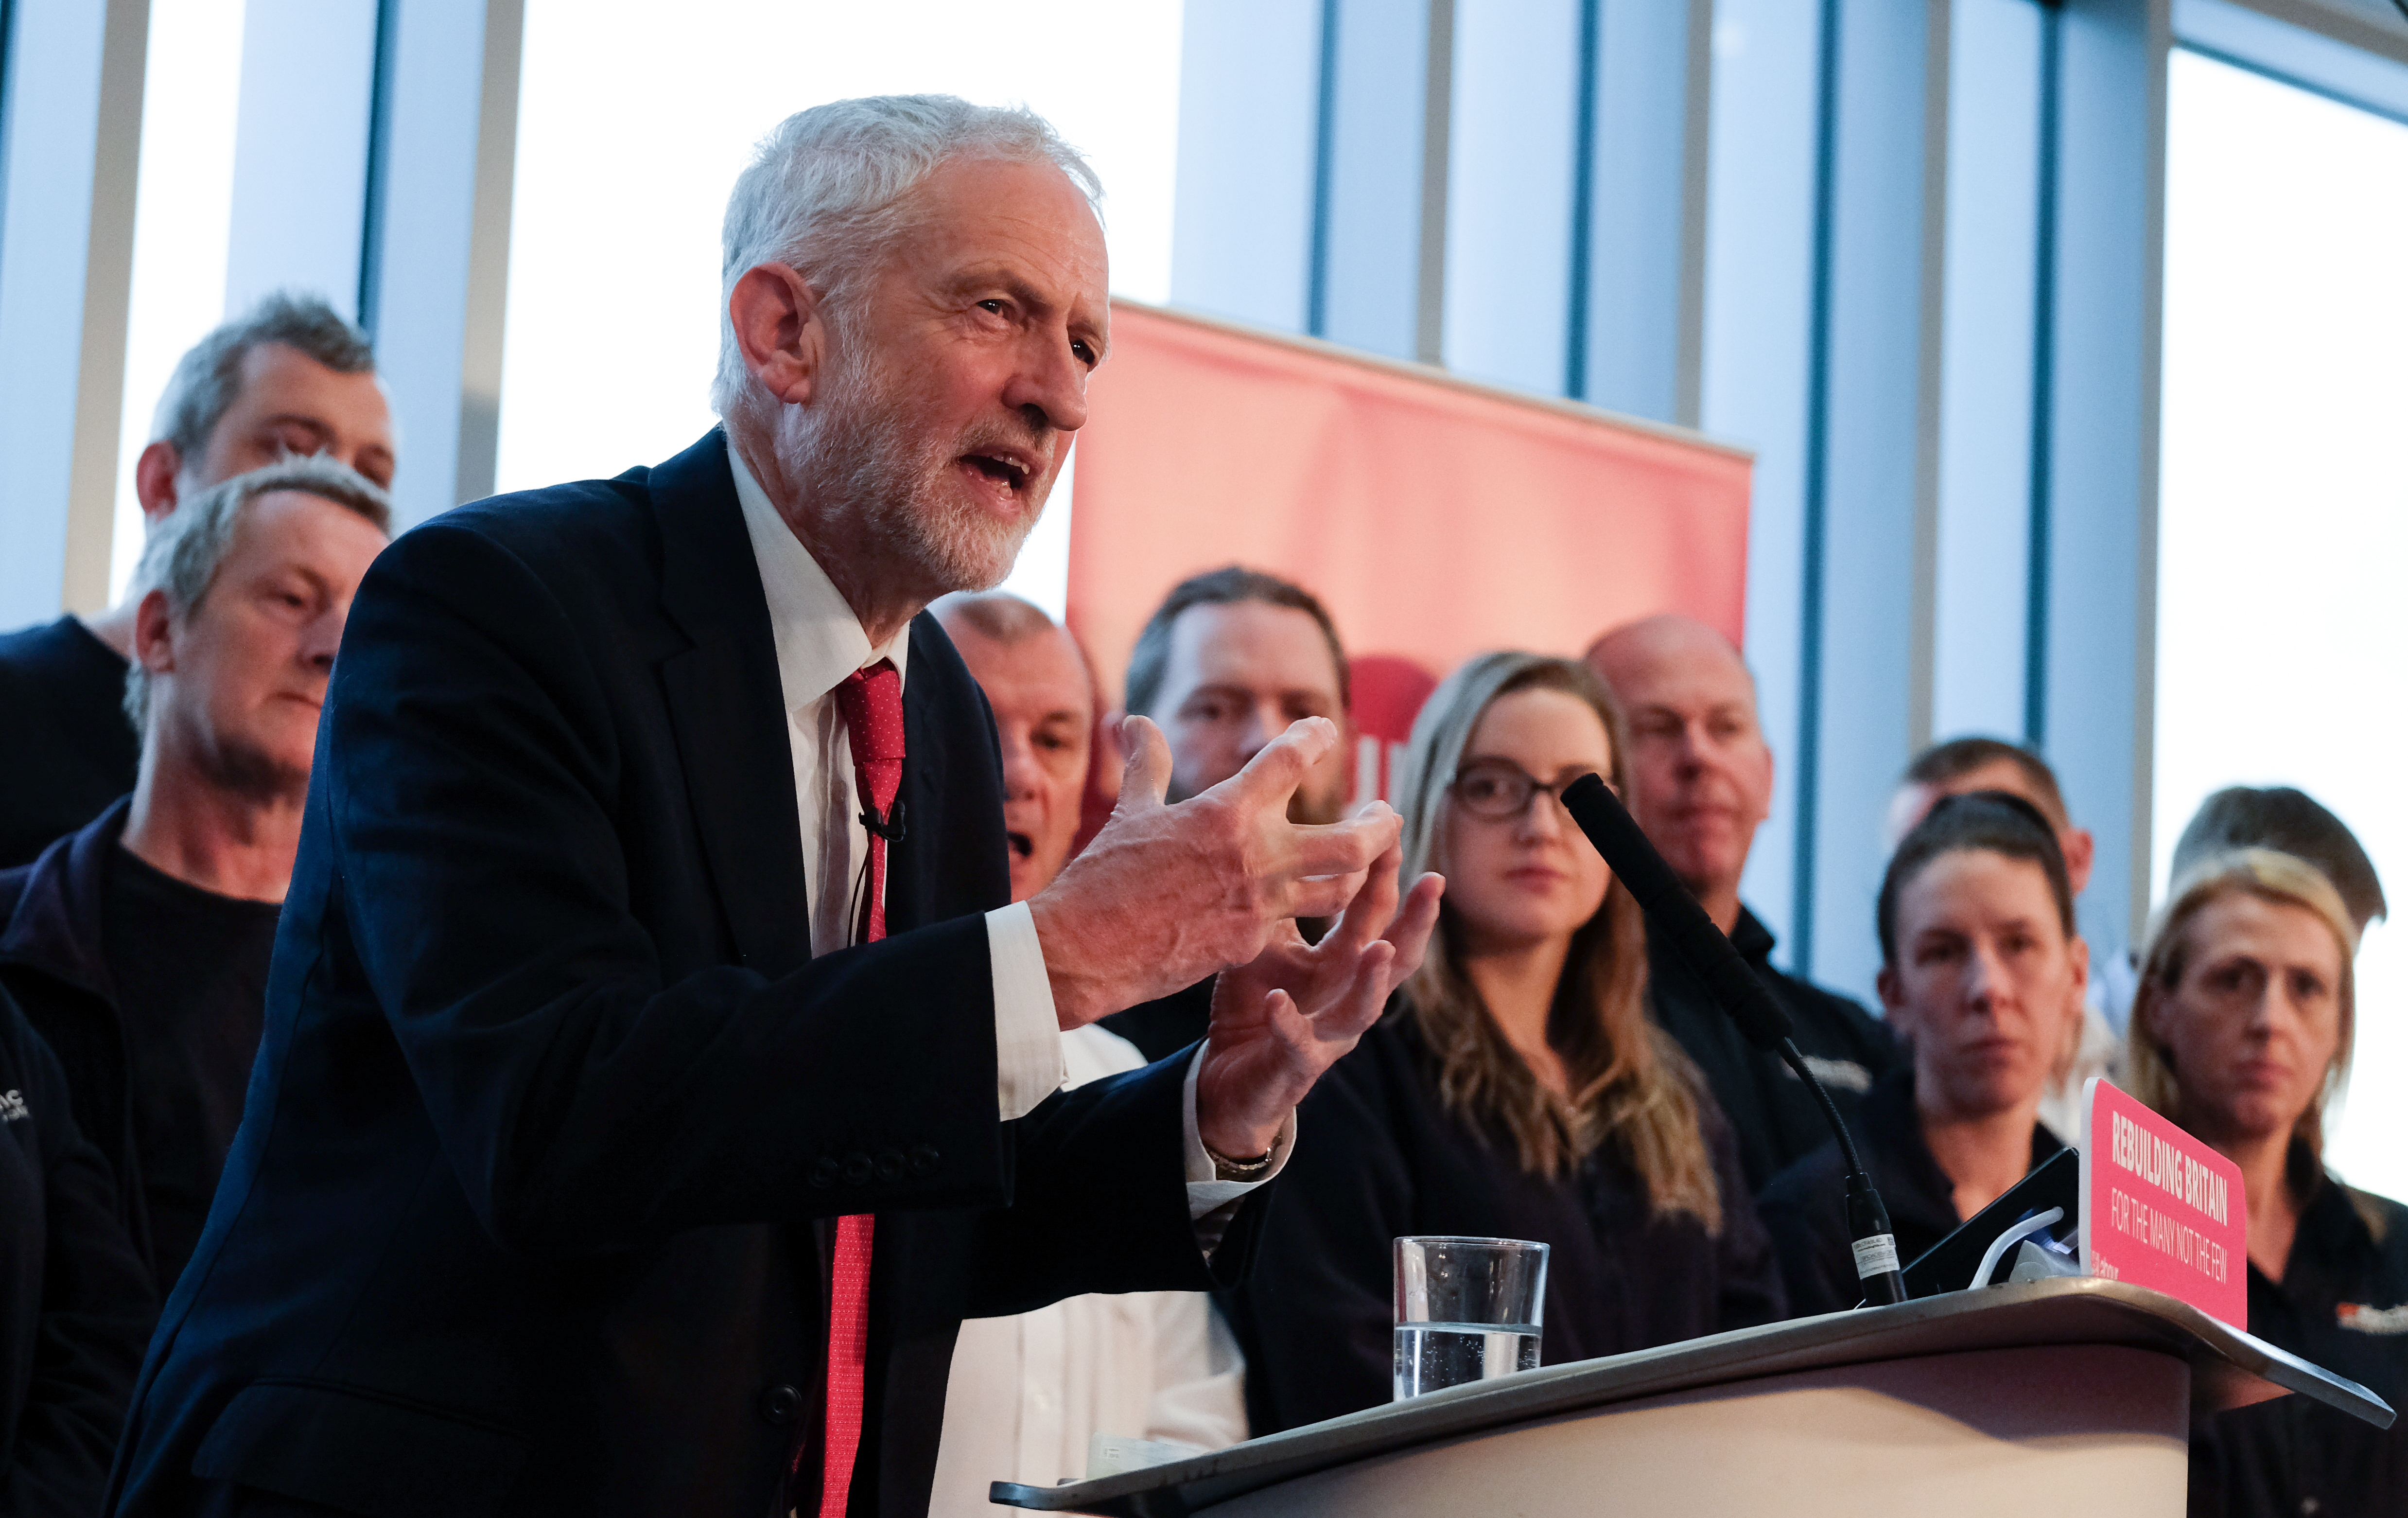 WAKEFIELD, ENGLAND - JANUARY 10: Labour leader Jeremy Corbyn delivers a speech to members of the media where he outlined Labour's approach to Brexit at the OE Electrics manufacturing factory on January 10, 2019 in Wakefield, England. The speech and q&a session came ahead of the Meaningful Vote on Theresa May's Brexit deal that is scheduled to take place next Tuesday. (Photo by Ian Forsyth/Getty Images)